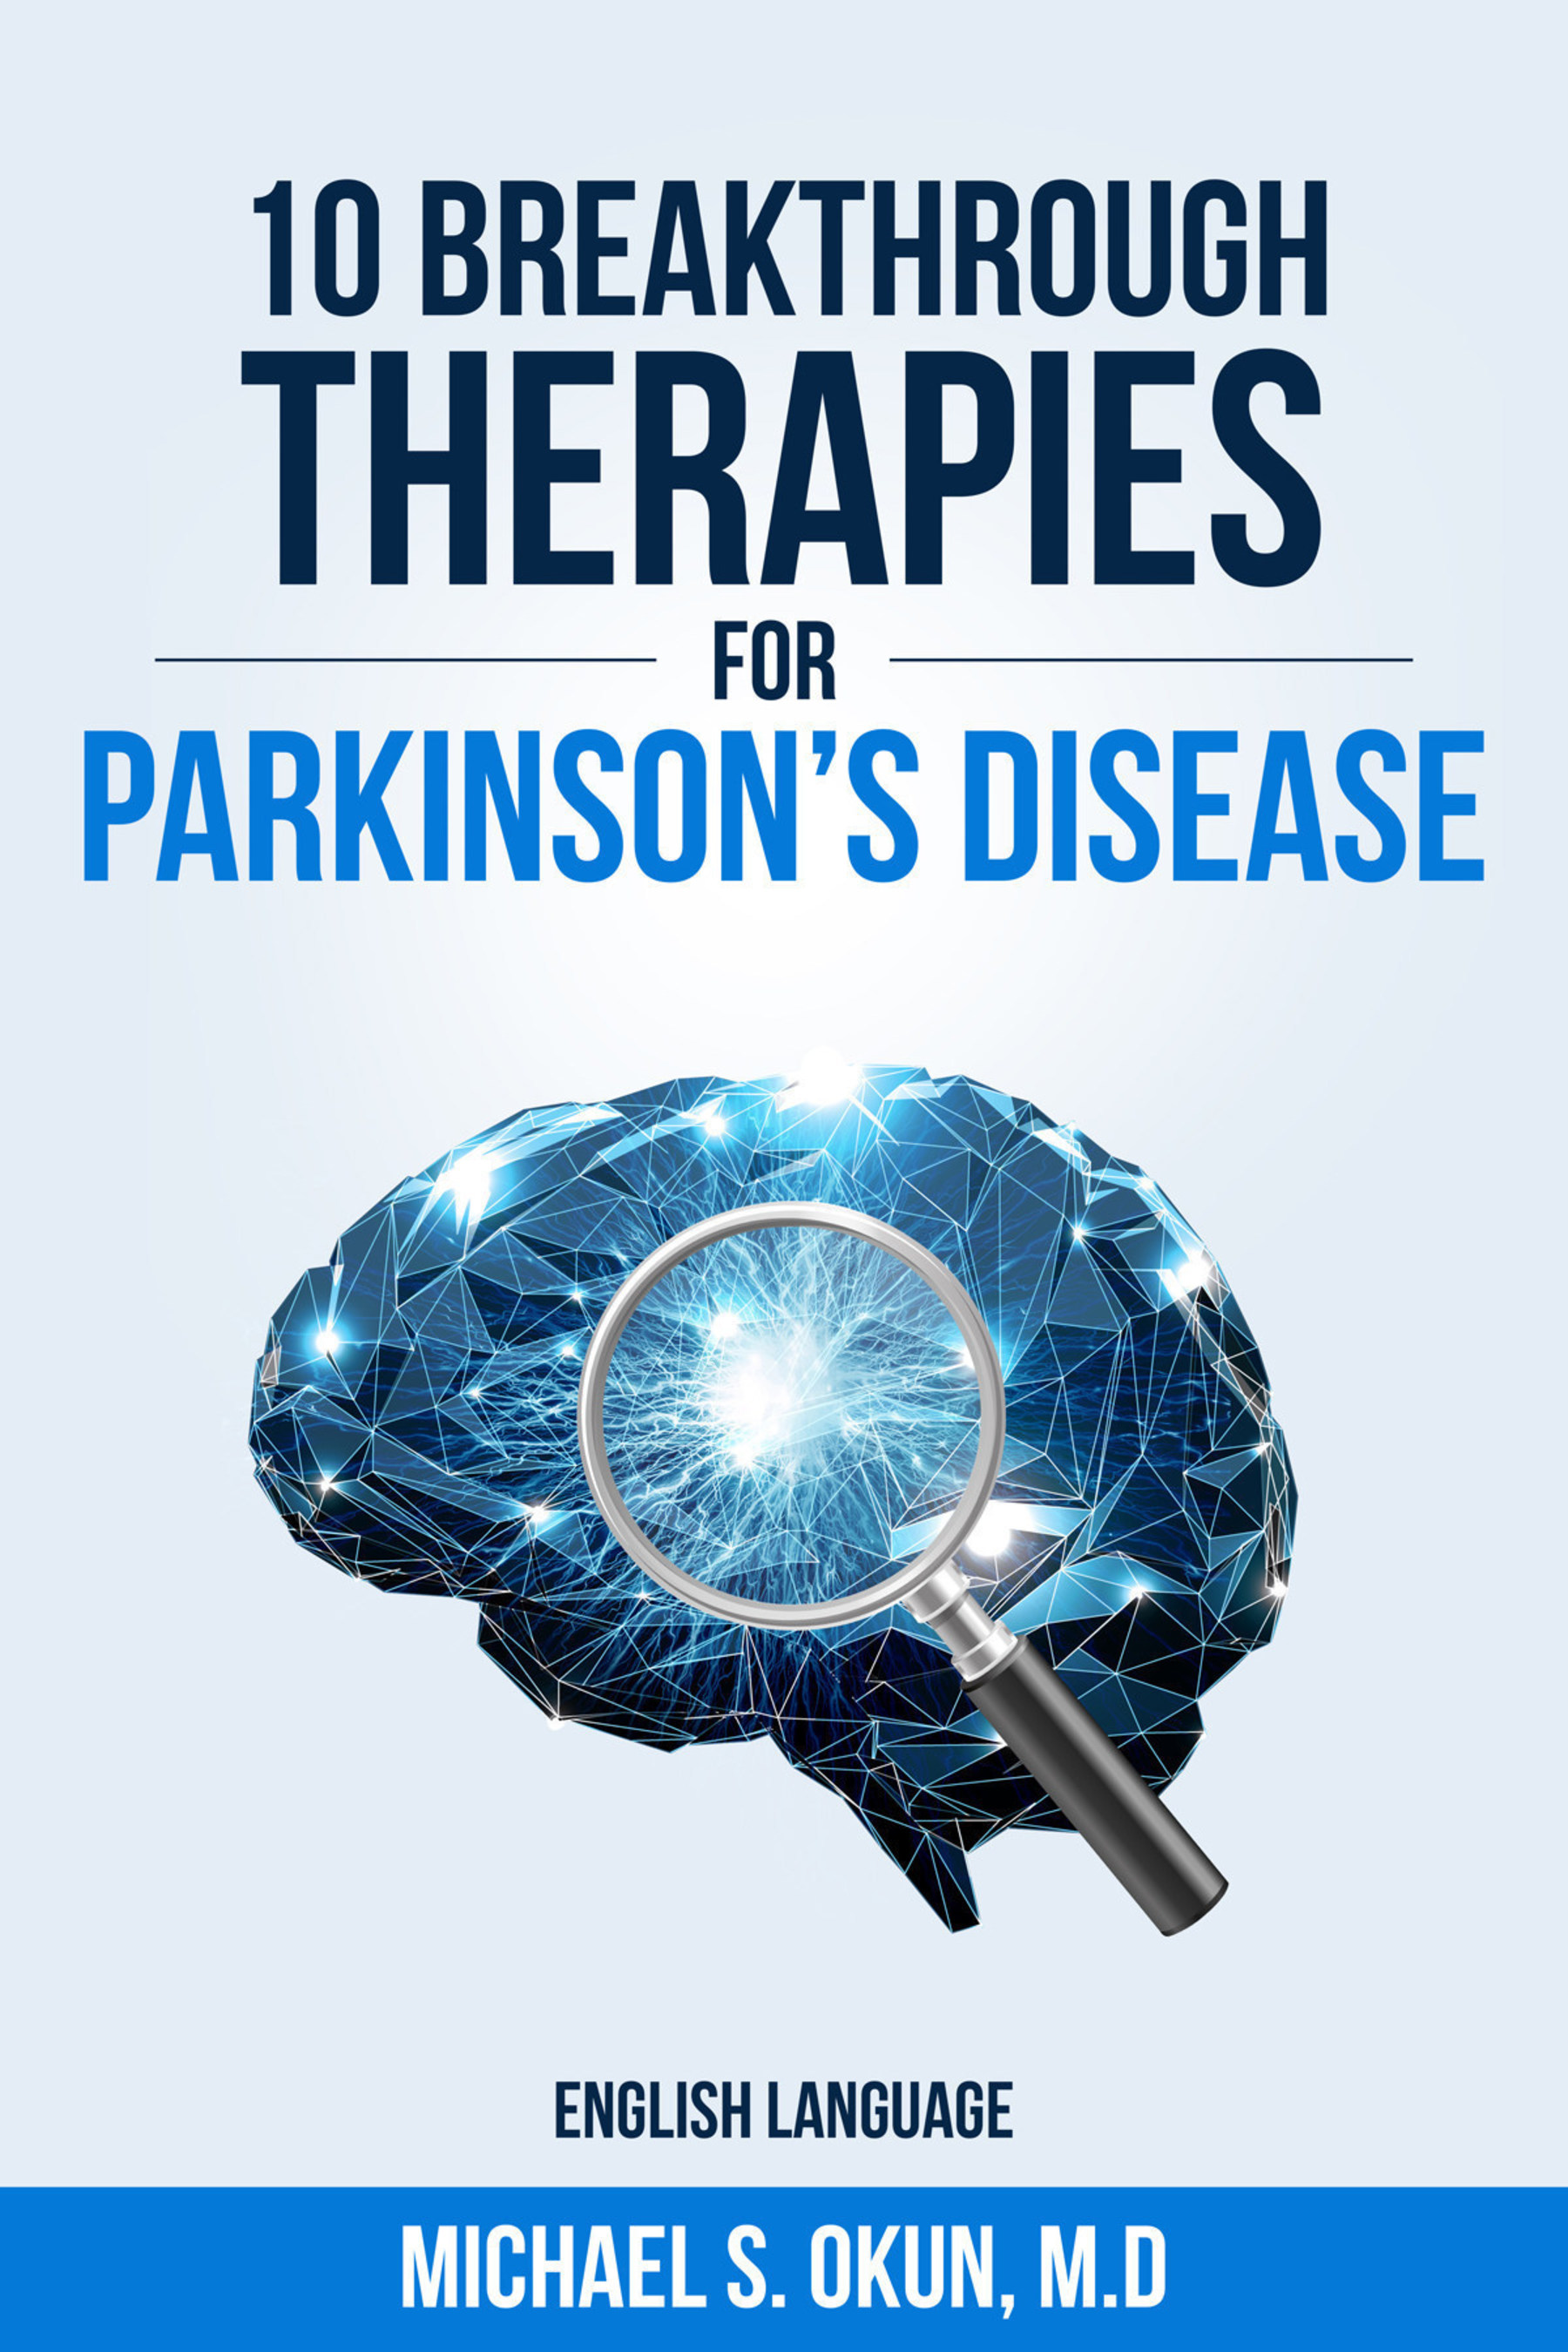 """""""10 Breakthrough Therapies for Parkinson's Disease"""" by Michael S. Okun, MD."""